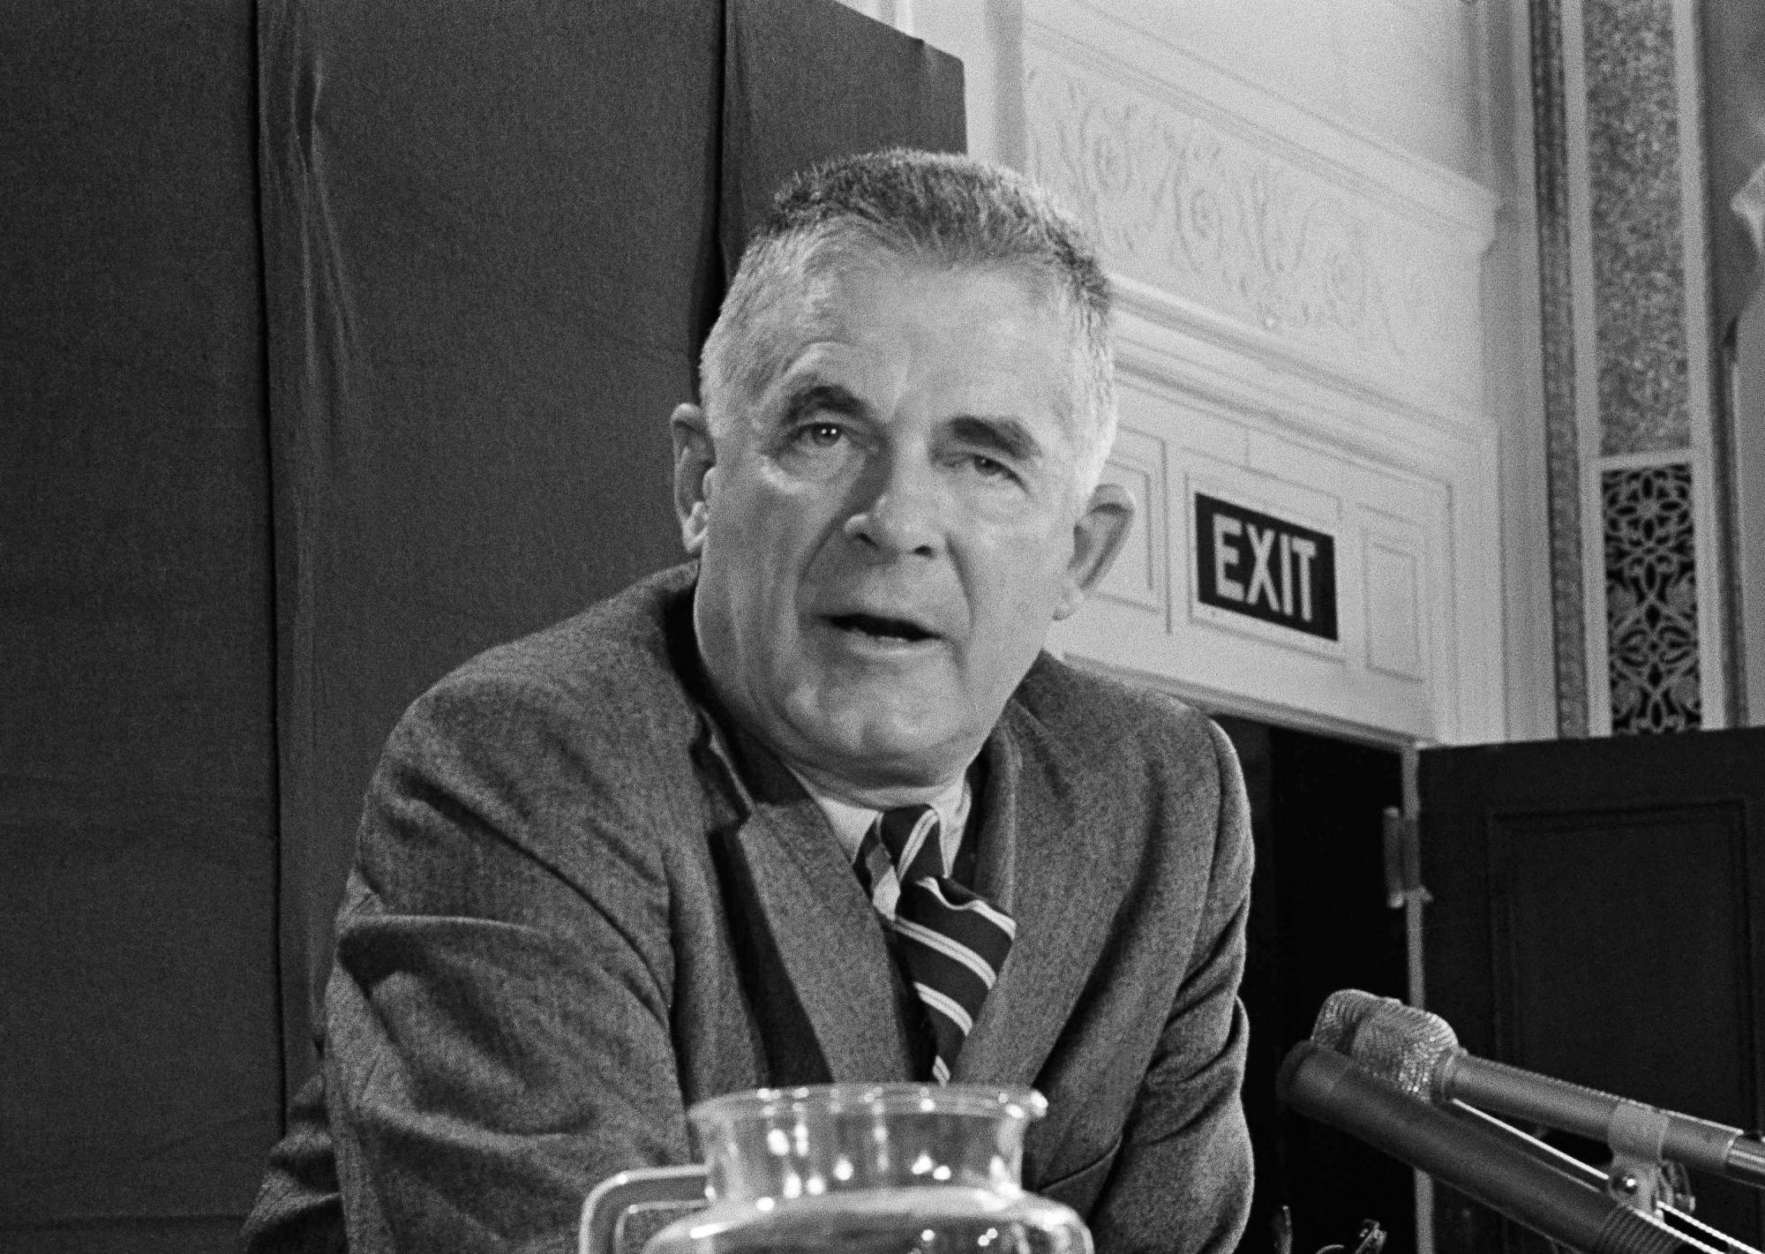 """FILE - In this Oct. 20, 1973 file photo, Archibald Cox speaks at a news conference in Washington. Comparisons to the Nixon-era """"Saturday night massacre"""" were swift after President Donald Trump fired the acting attorney general for refusing to enforce his executive order on immigrants and refugees. In both cases, a dispute between a president and his Justice Department led to an evening maneuver by the president to install an acting attorney general more to his liking. (AP Photo/John Duricka, File)"""